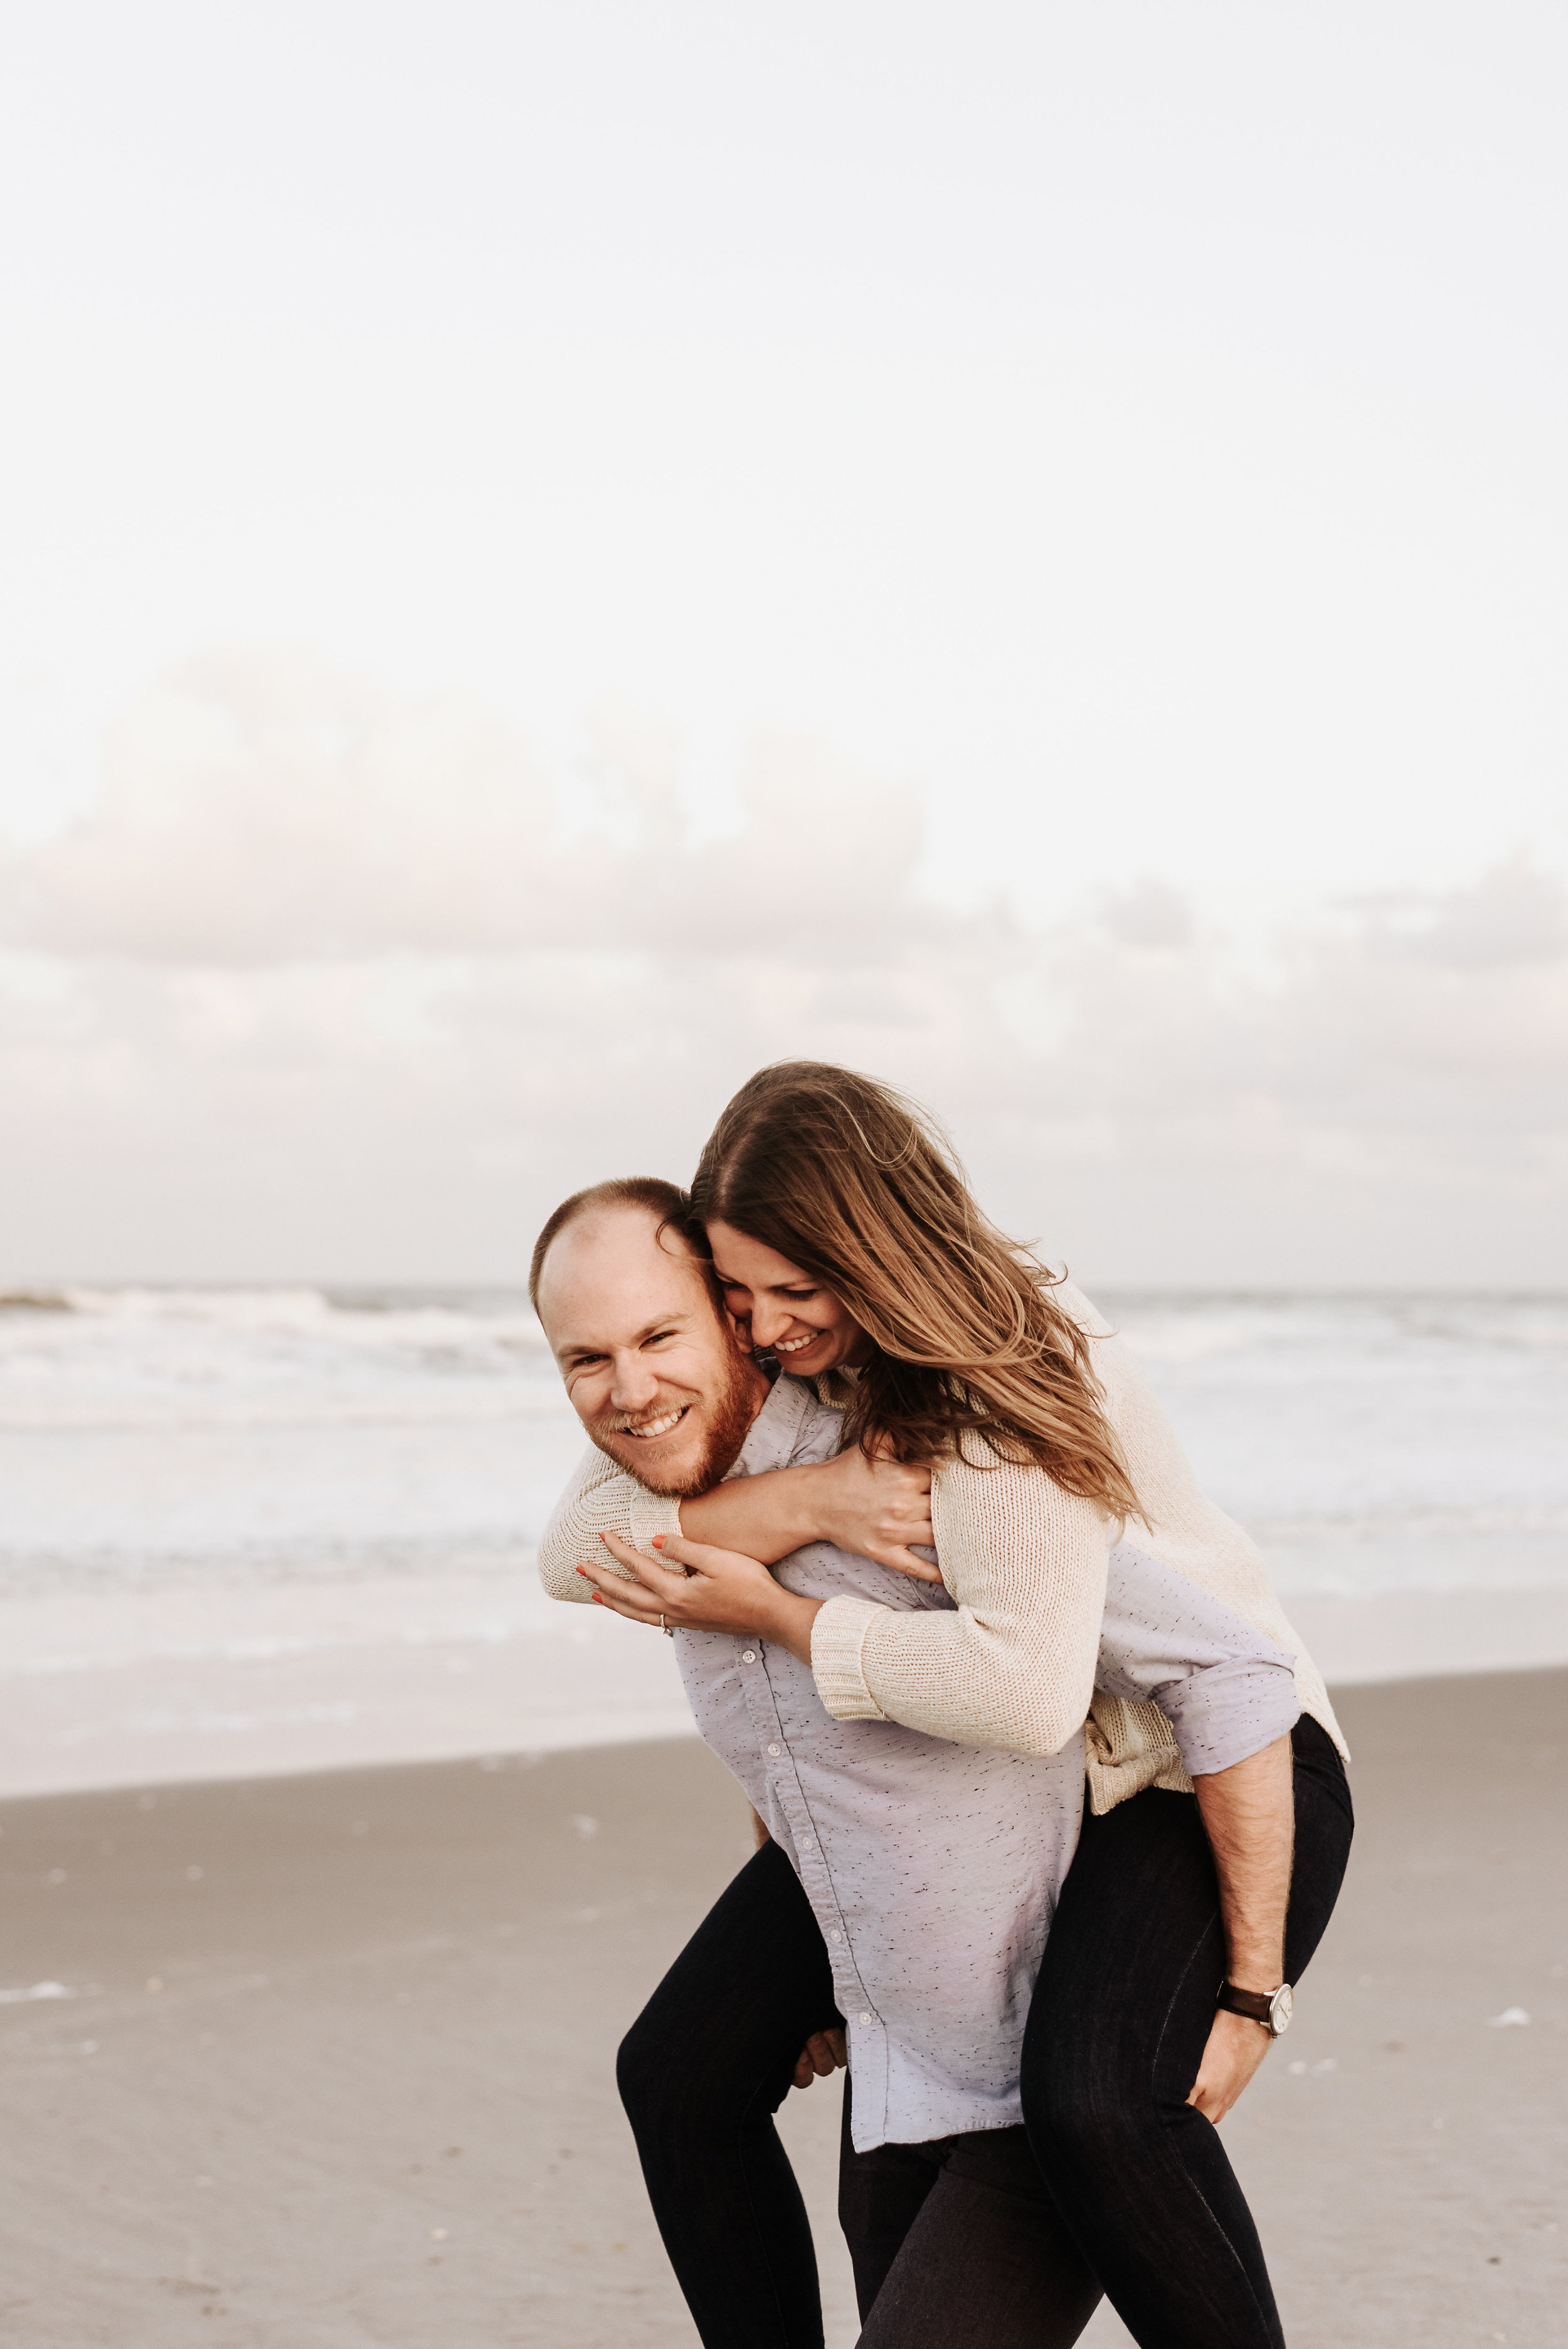 Courtney_Luke_Wedding_Engagement_Session_Cocoa_Beach_Florida_Photography_by_V_4836.jpg